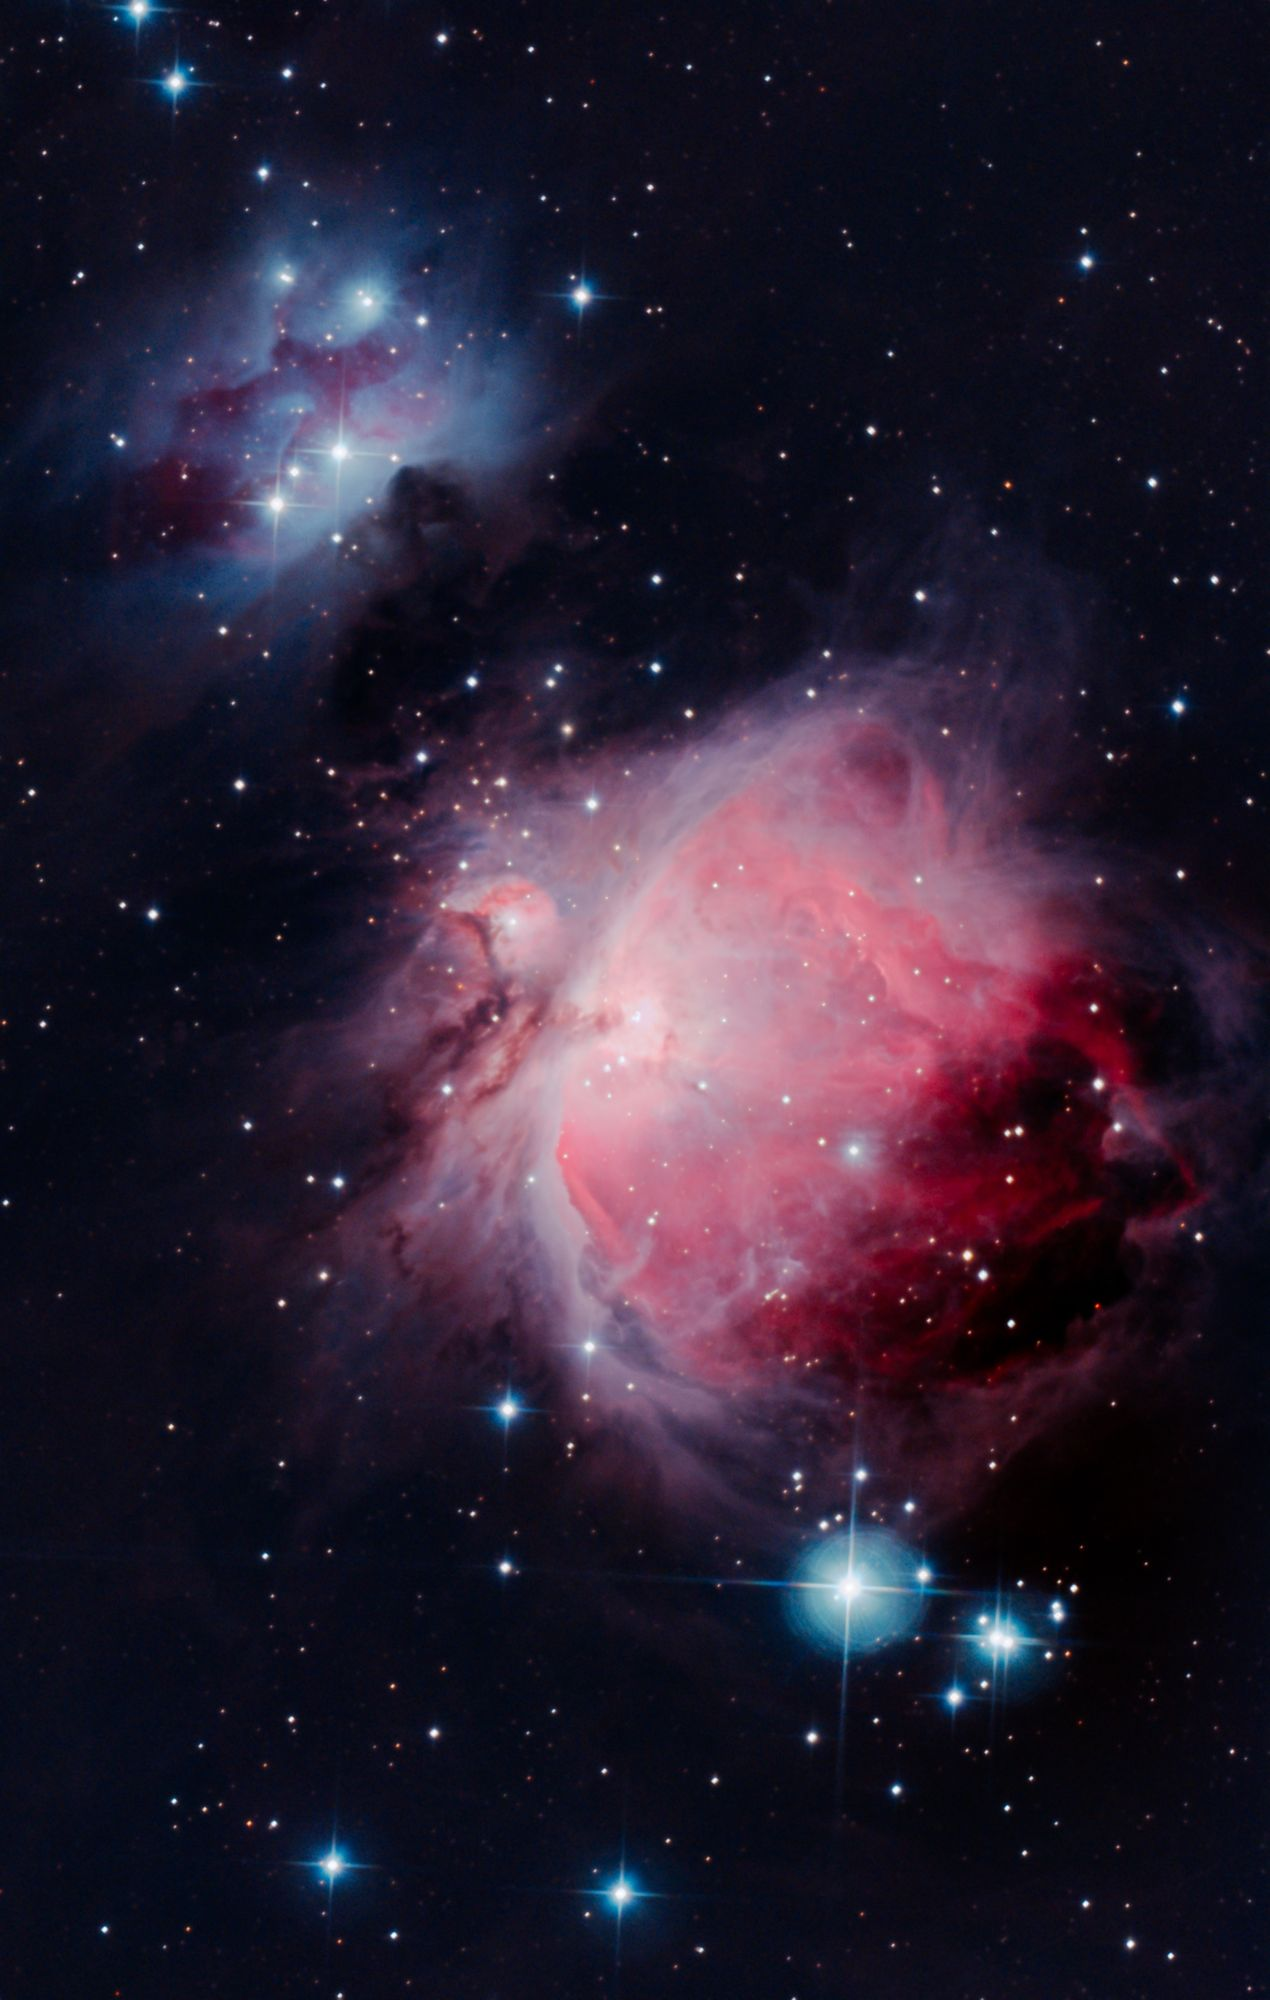 M42 & NGC 1977 - Orion and Running Man Nebulas